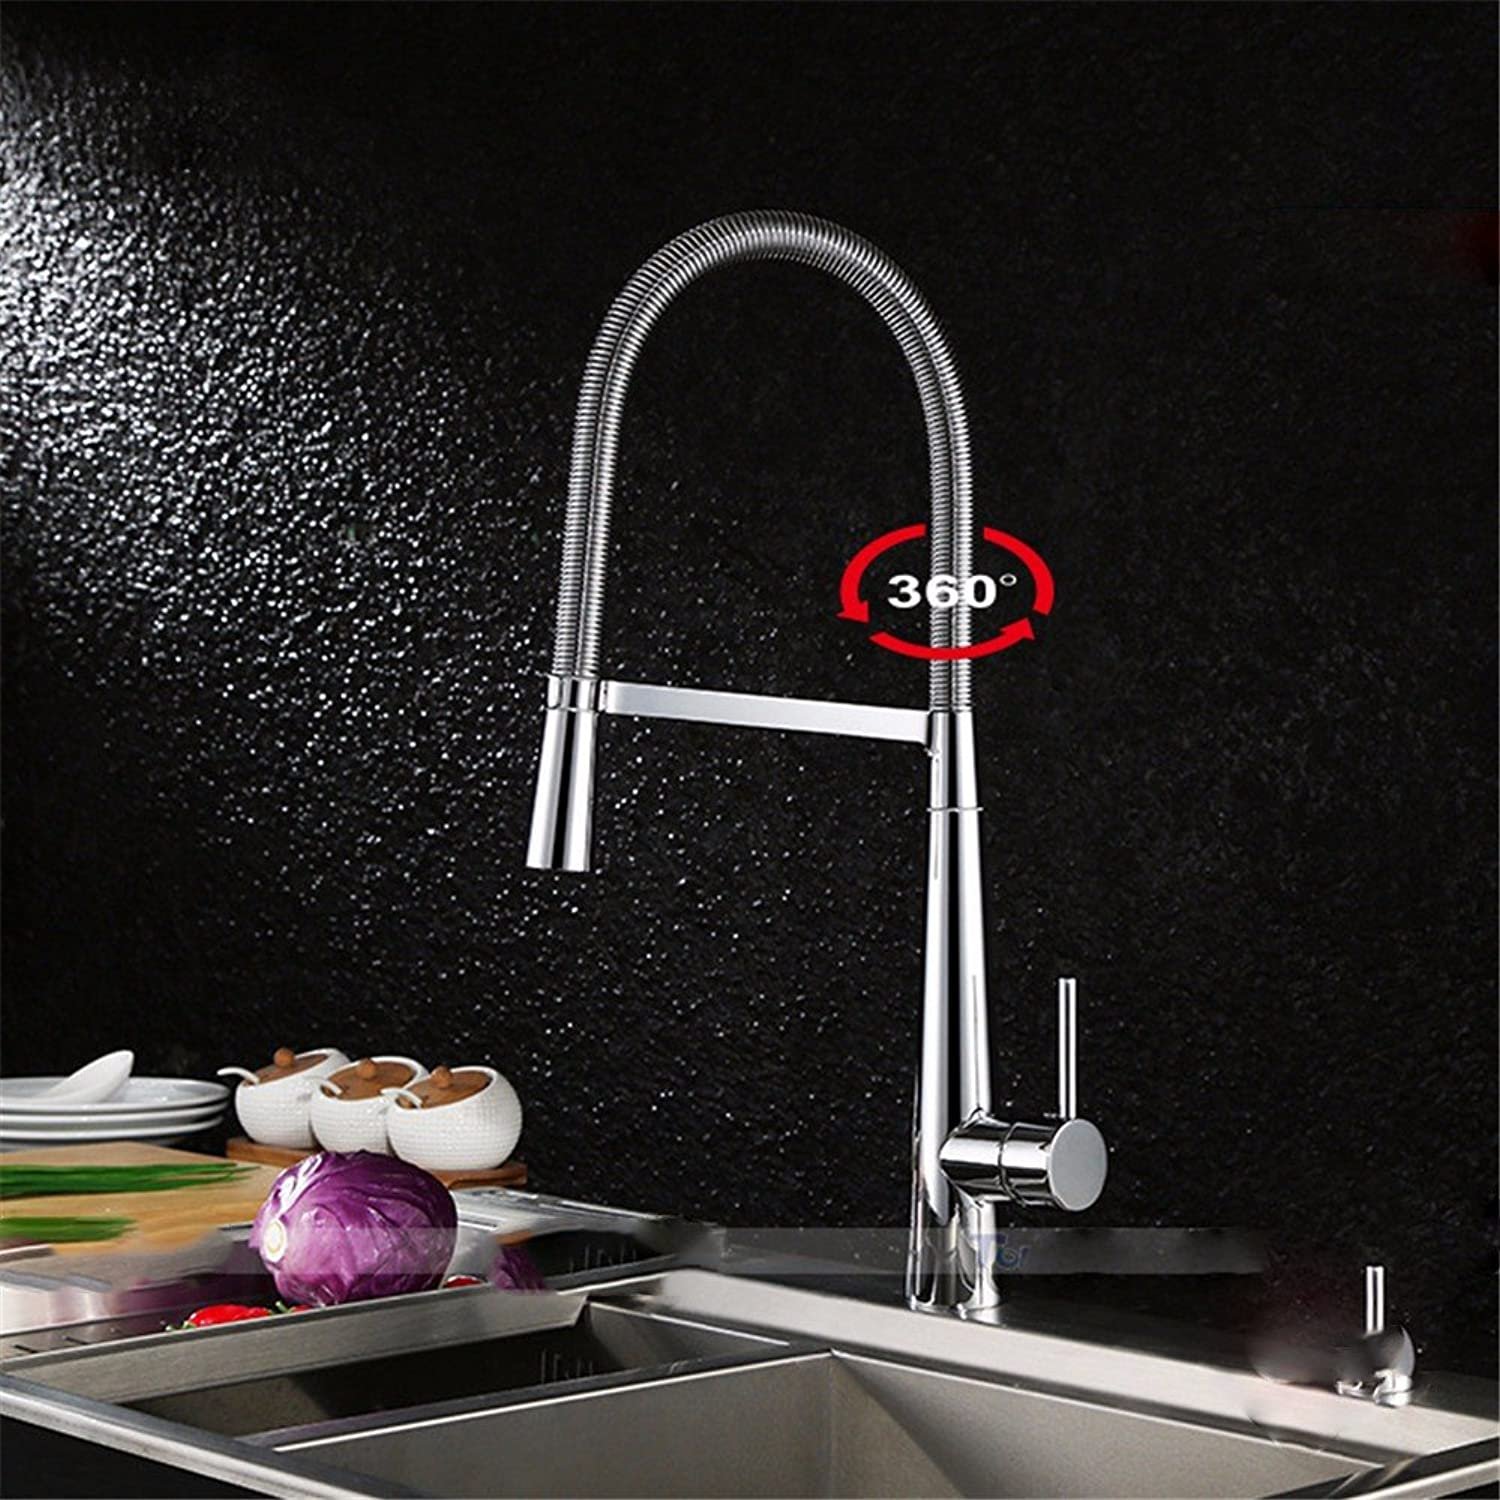 Bijjaladeva Bathroom Sink Vessel Faucet Basin Mixer Tap Brass mixing of hot and cold water ceramic bathroom sink kitchen sink washing dishes spring basin Chrome color swivel Faucet